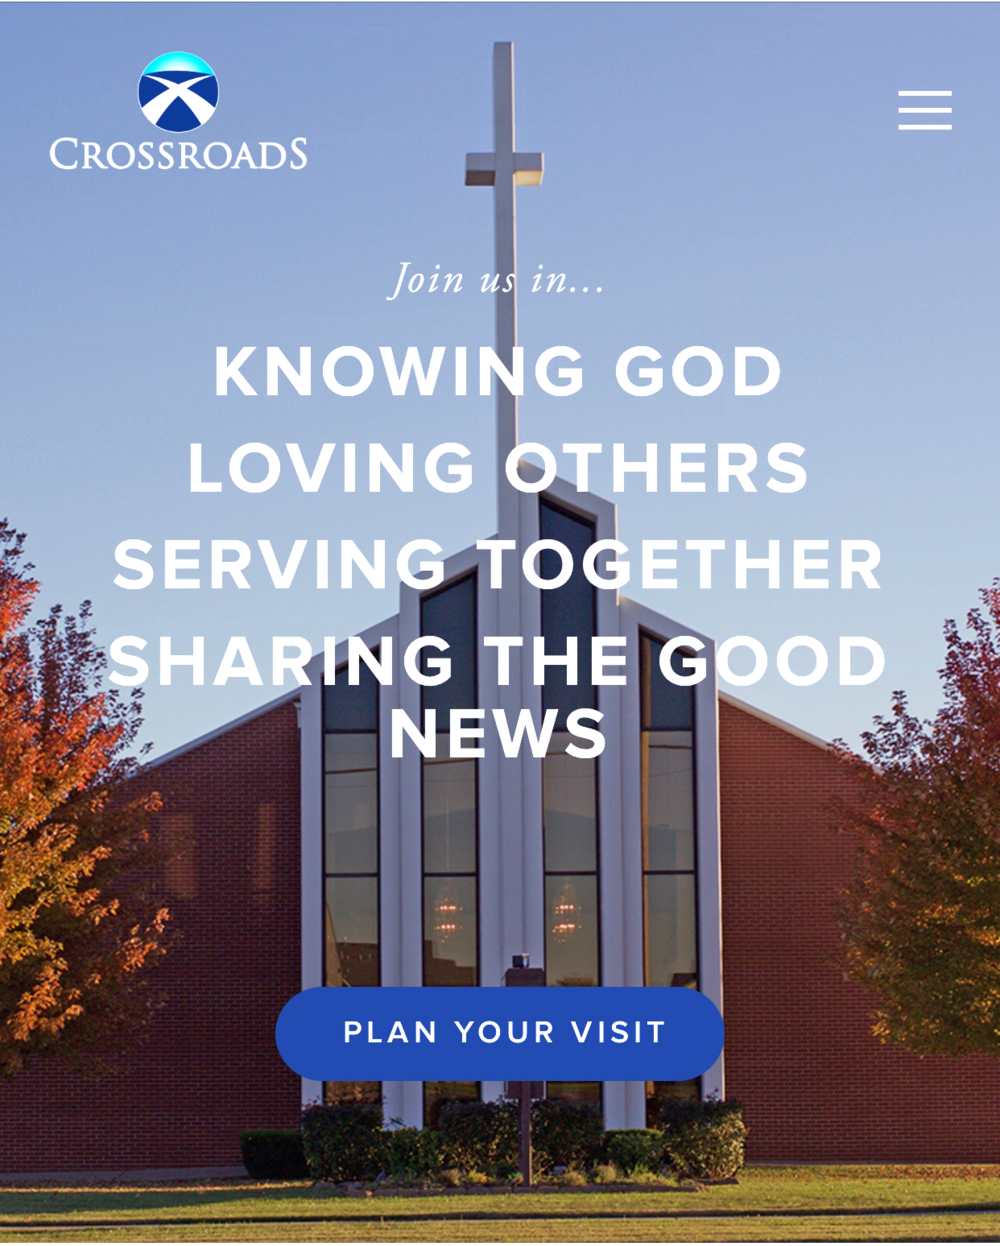 New Crossroads Landing Page (click to open in a new window)